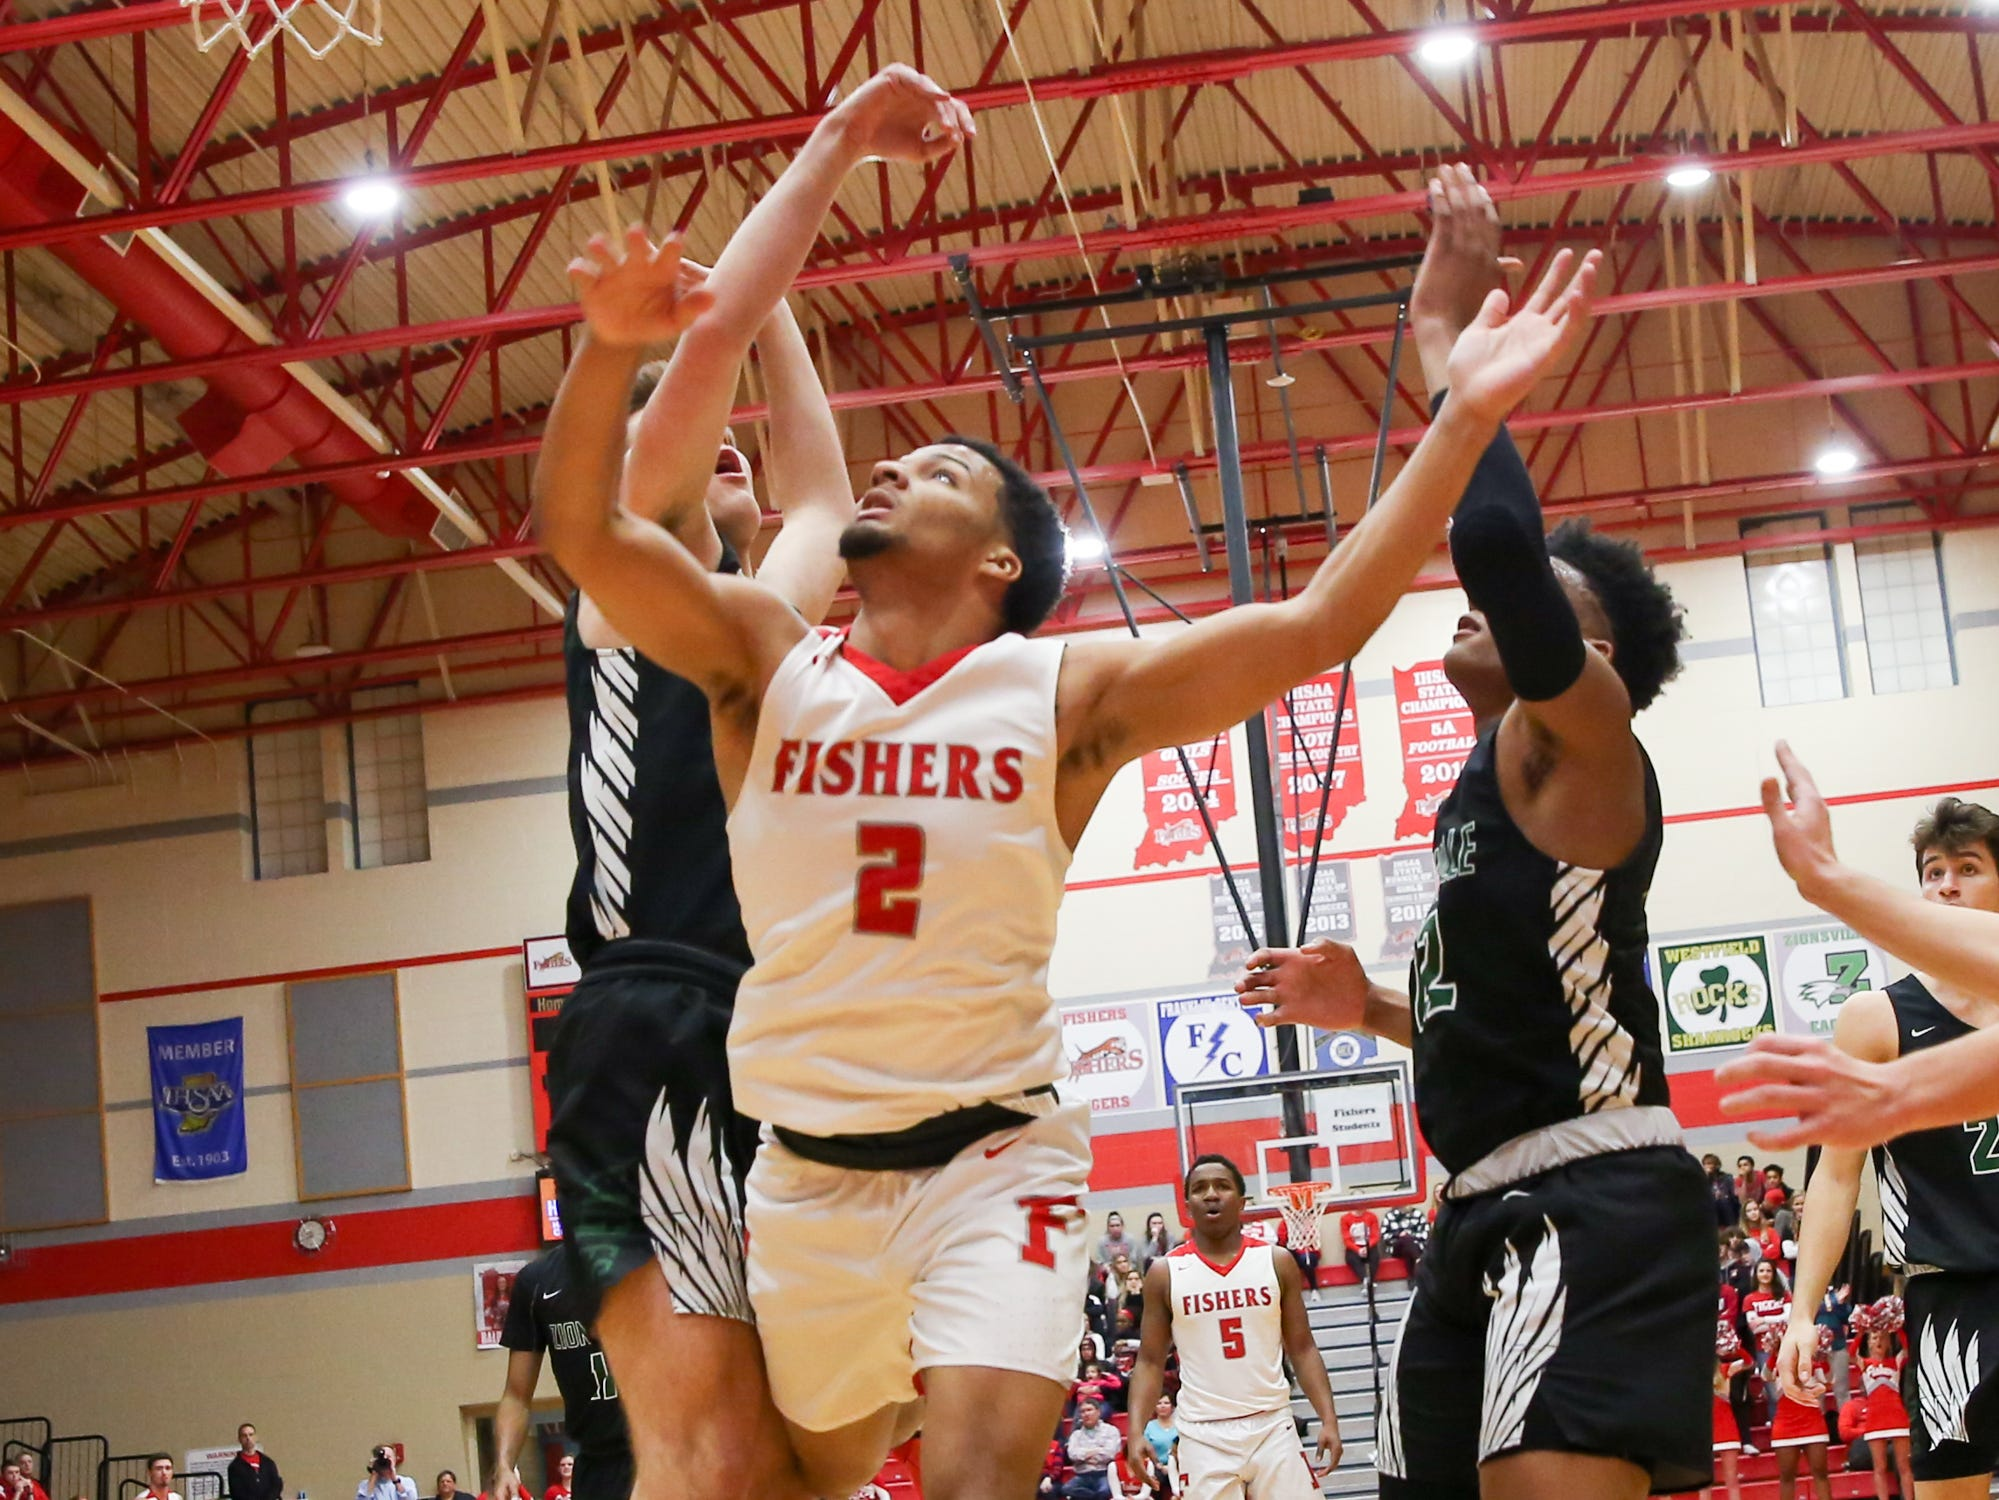 Fisher's Josiah Matthews (2) drives in for a lay up during the first half of Zionsville vs. Fishers high school boys varsity basketball game held at Fishers High School, February 15, 2019.